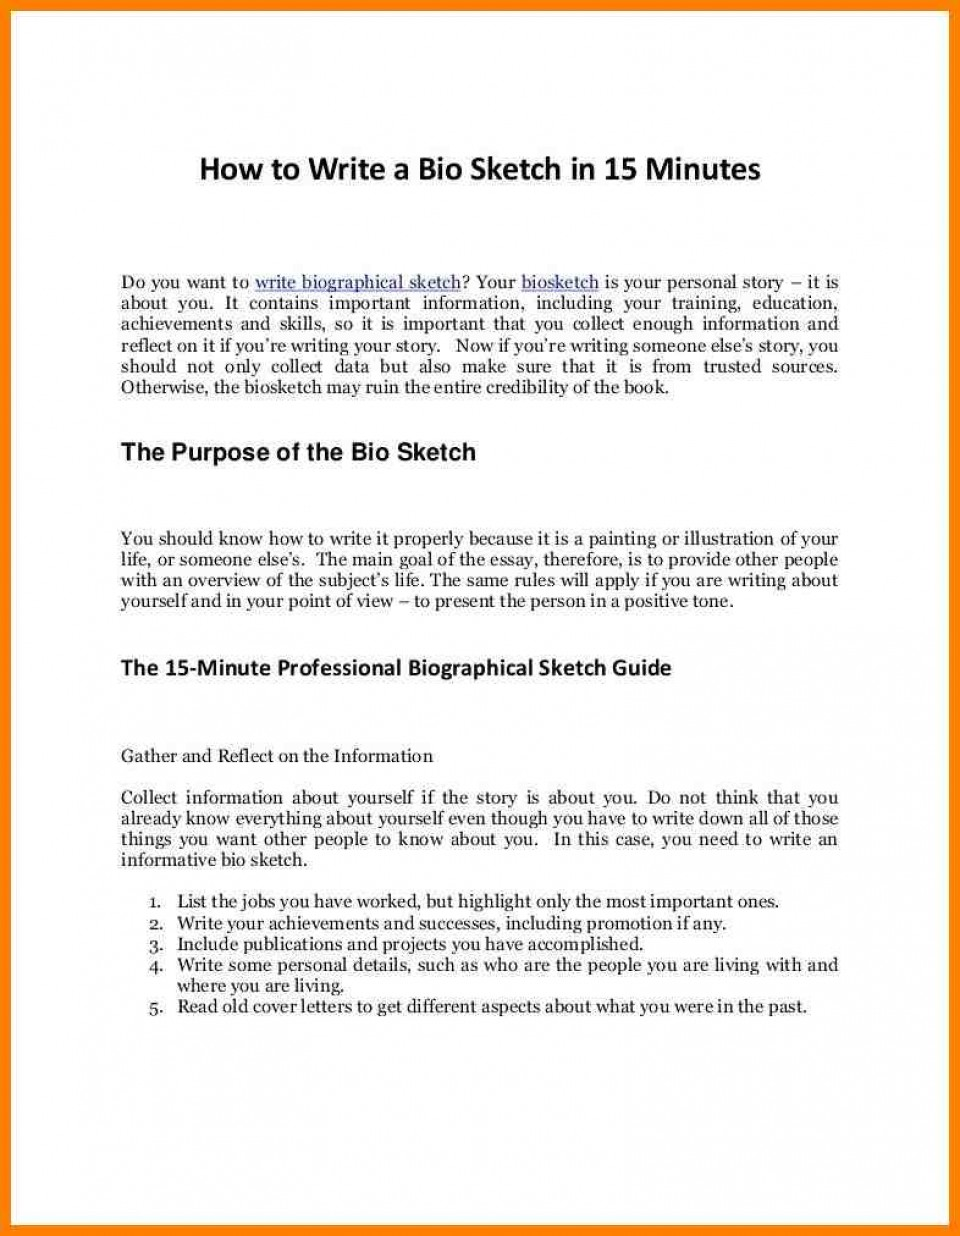 001 personal profile essays how to write biography start